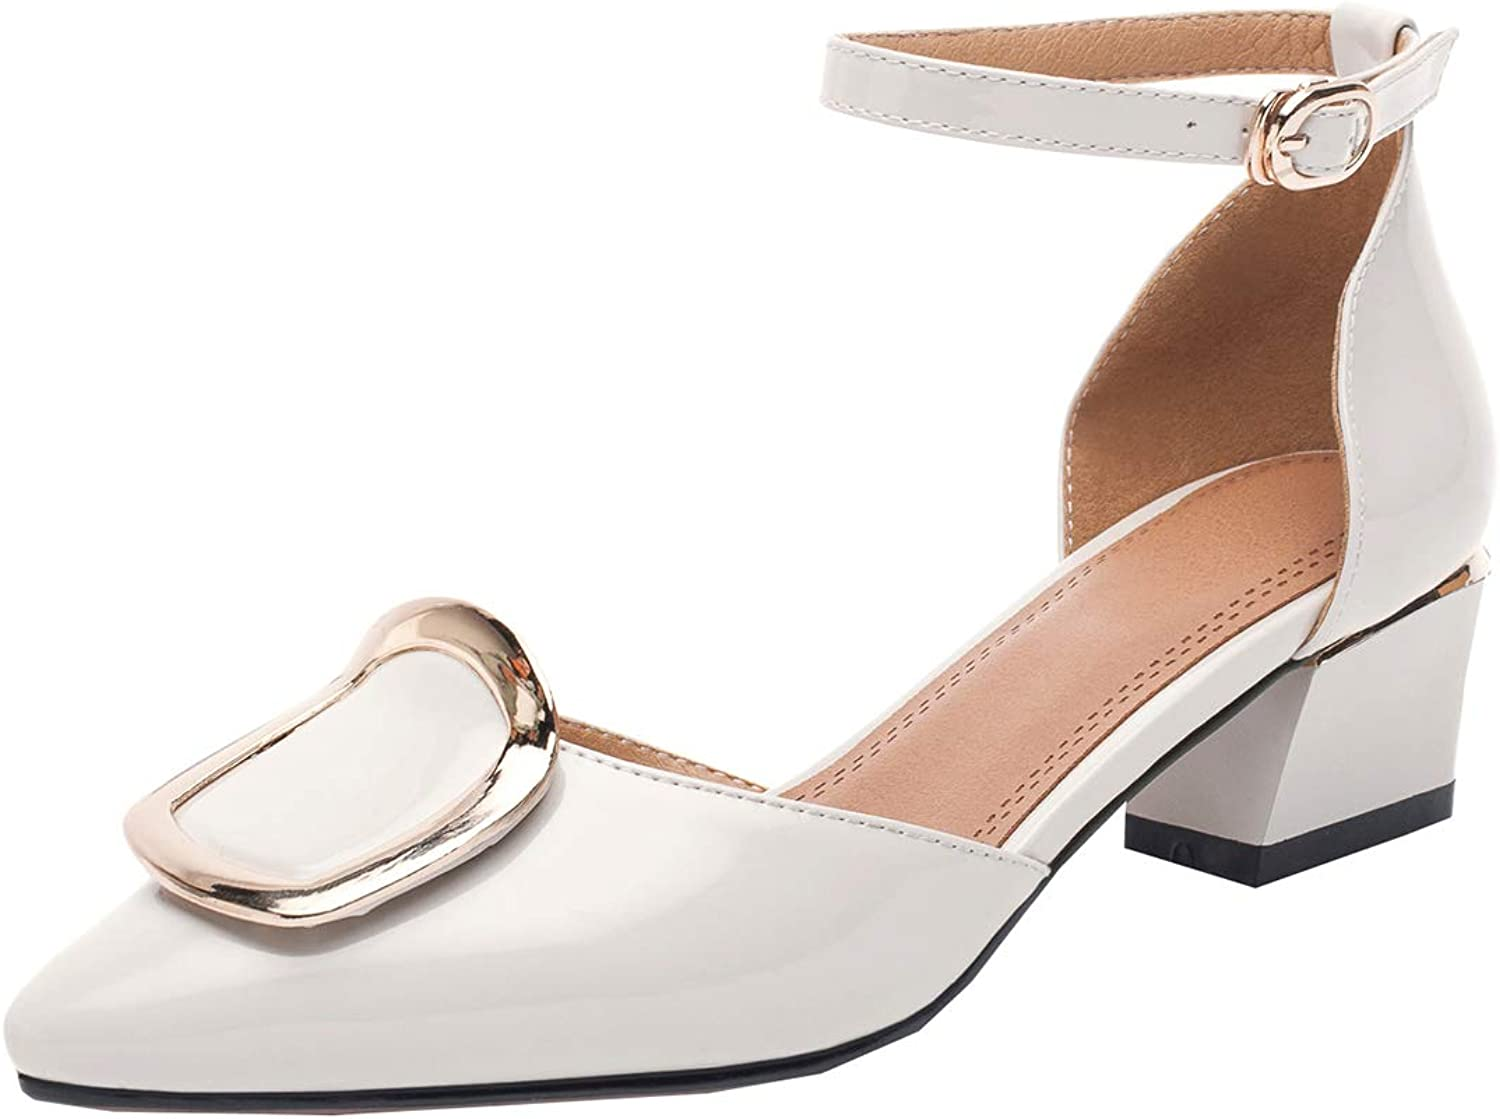 Artfaerie Womens Pointed Toe Ankle Strap Chunky Heel D'Orsay Pumps Patent Leather Court shoes